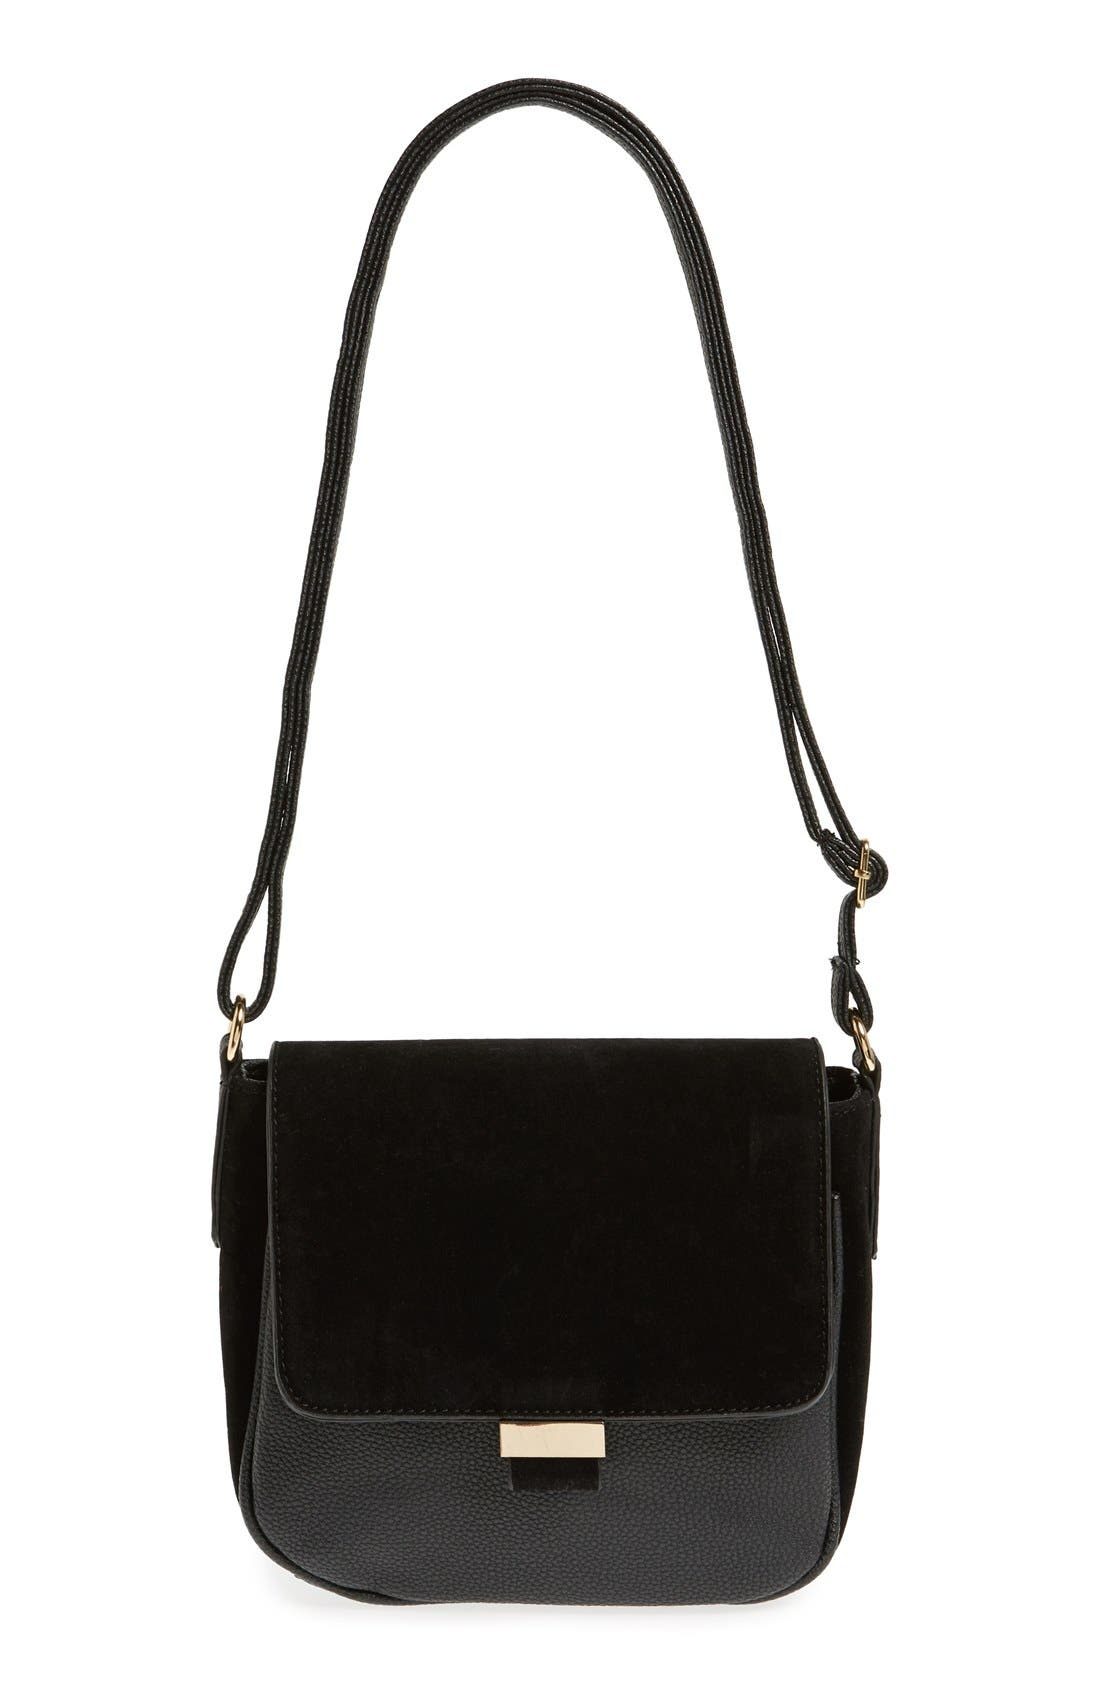 Alternate Image 1 Selected - NU-G Mixed Finish Saddle Crossbody Bag